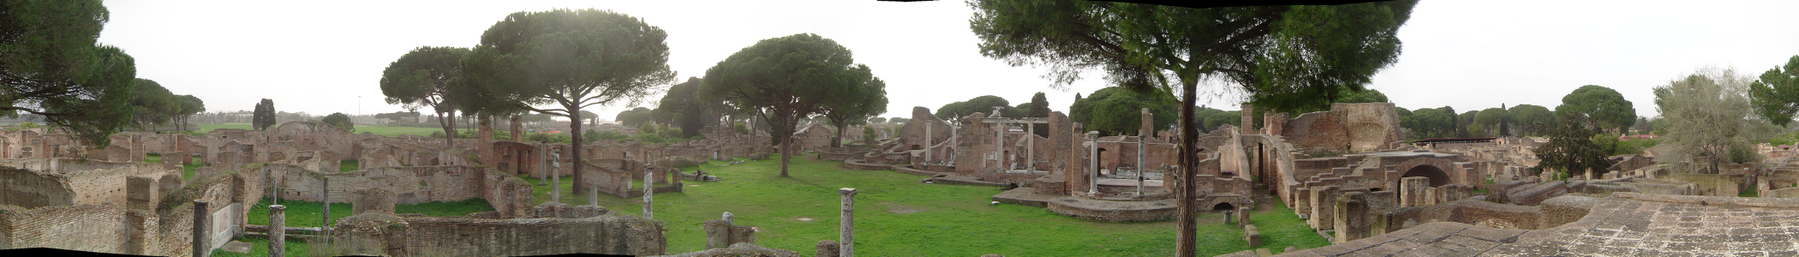 Panorama Ostia Antica banner.png